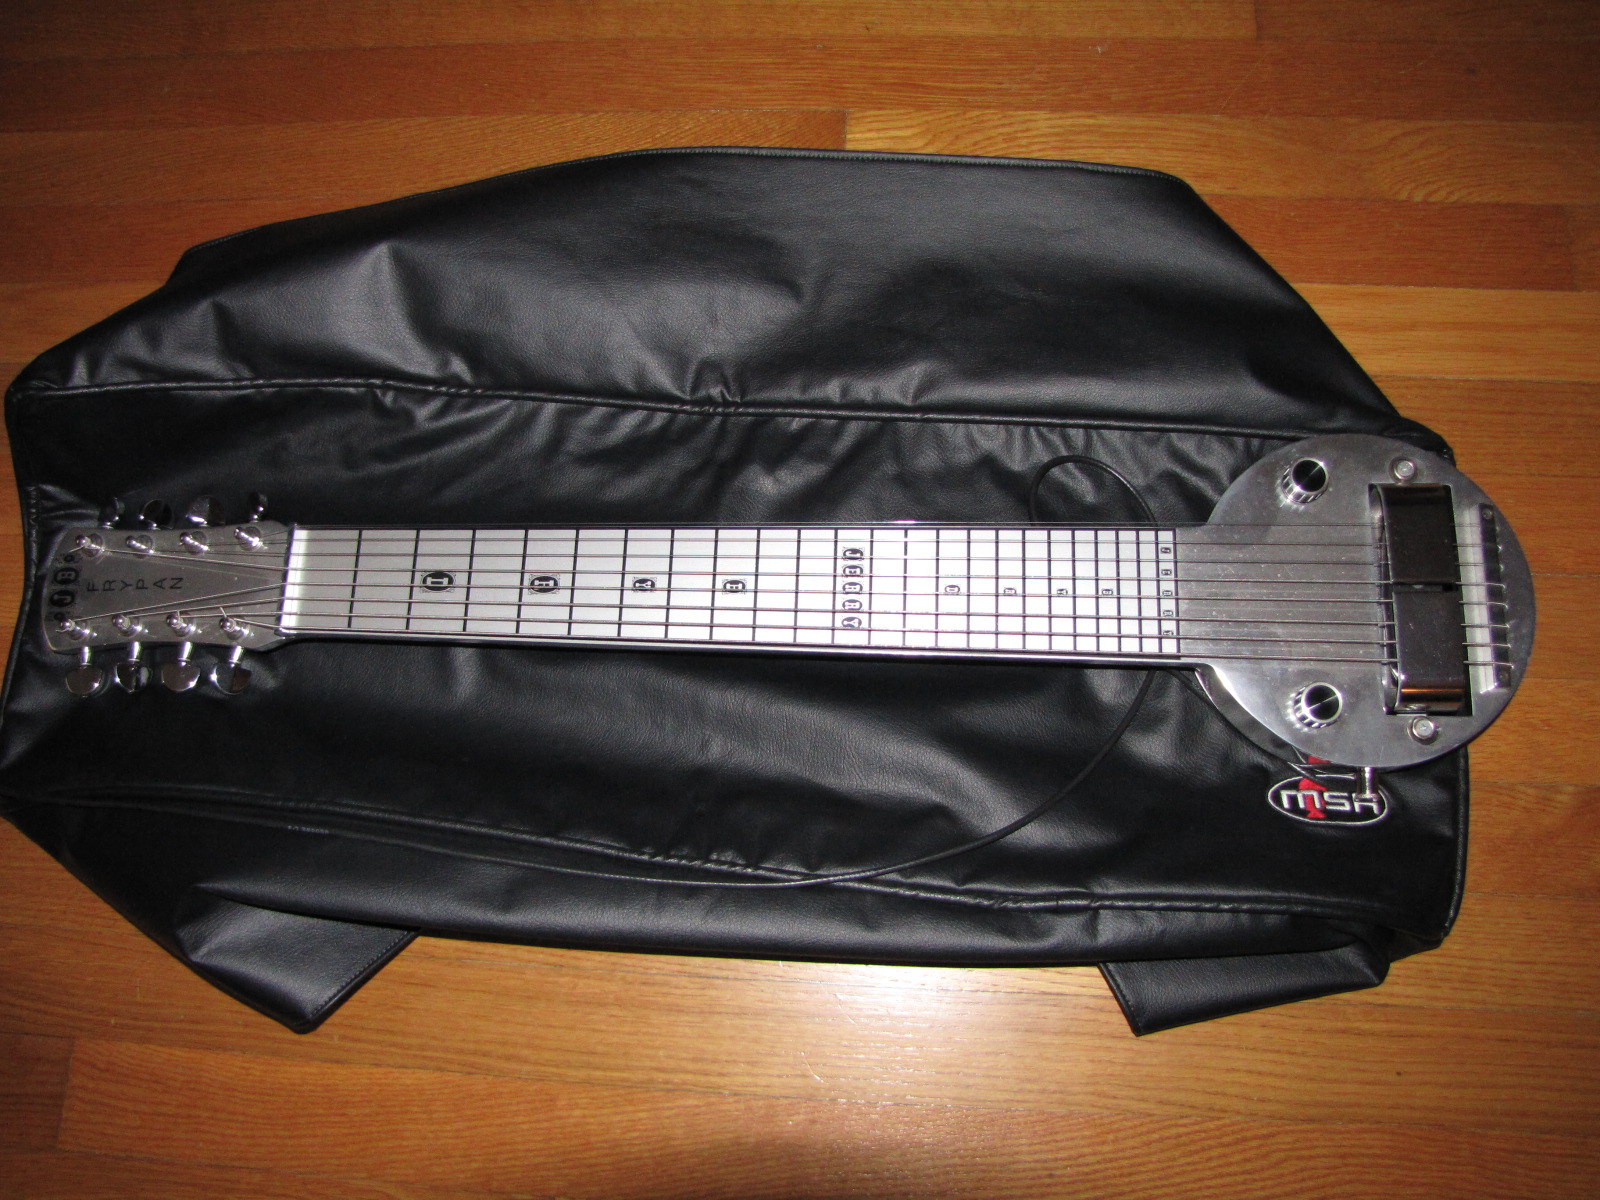 8 String C6 C13 A6 Lap Steel Tuning